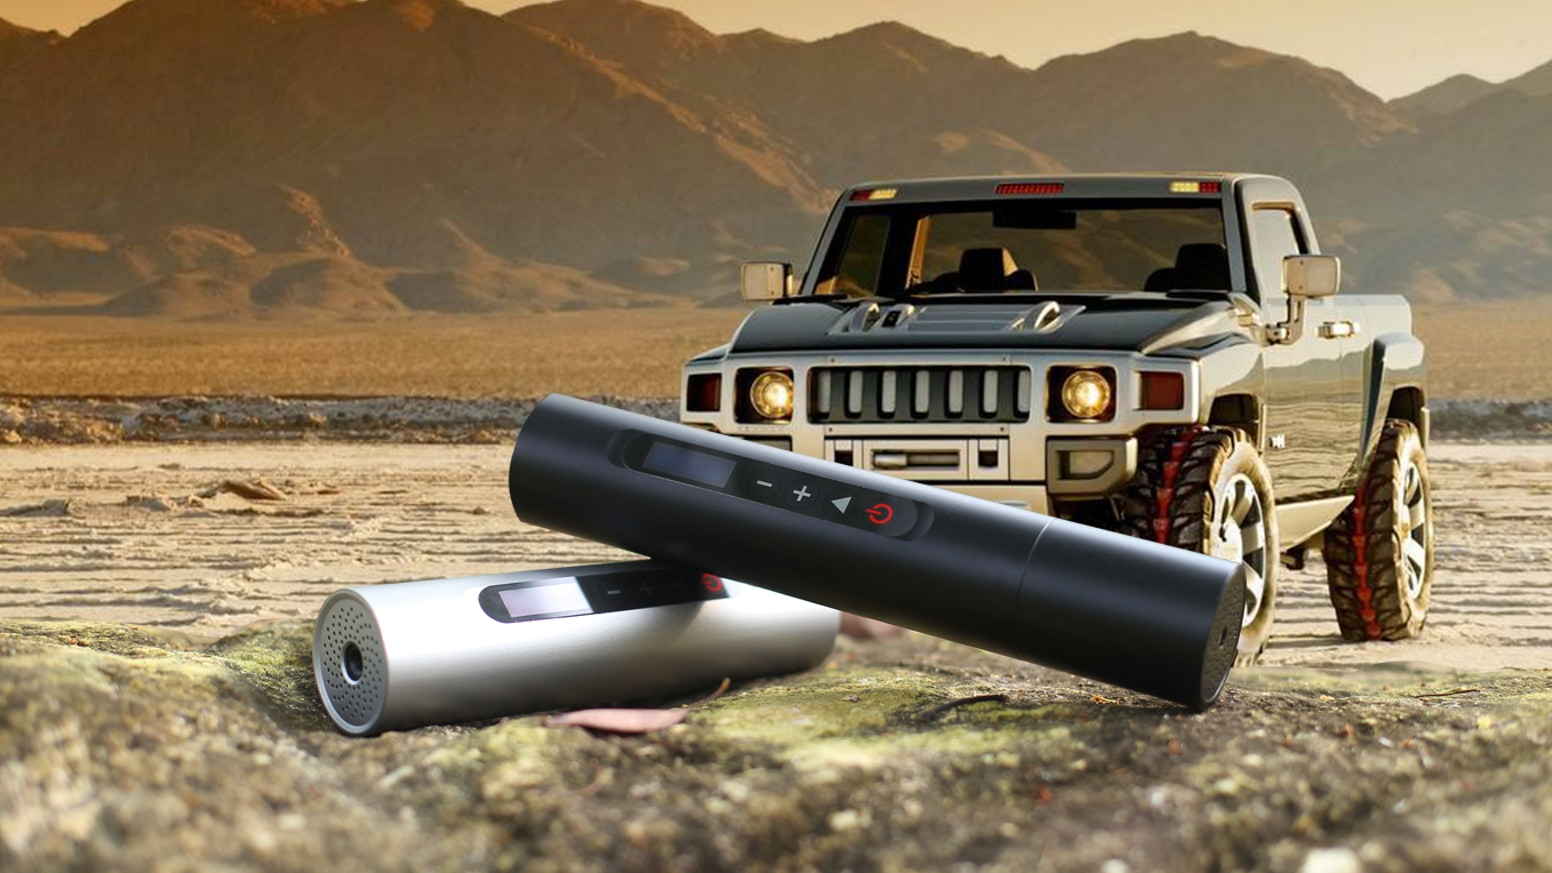 World's smallest and most portable tire inflator / air compressor.